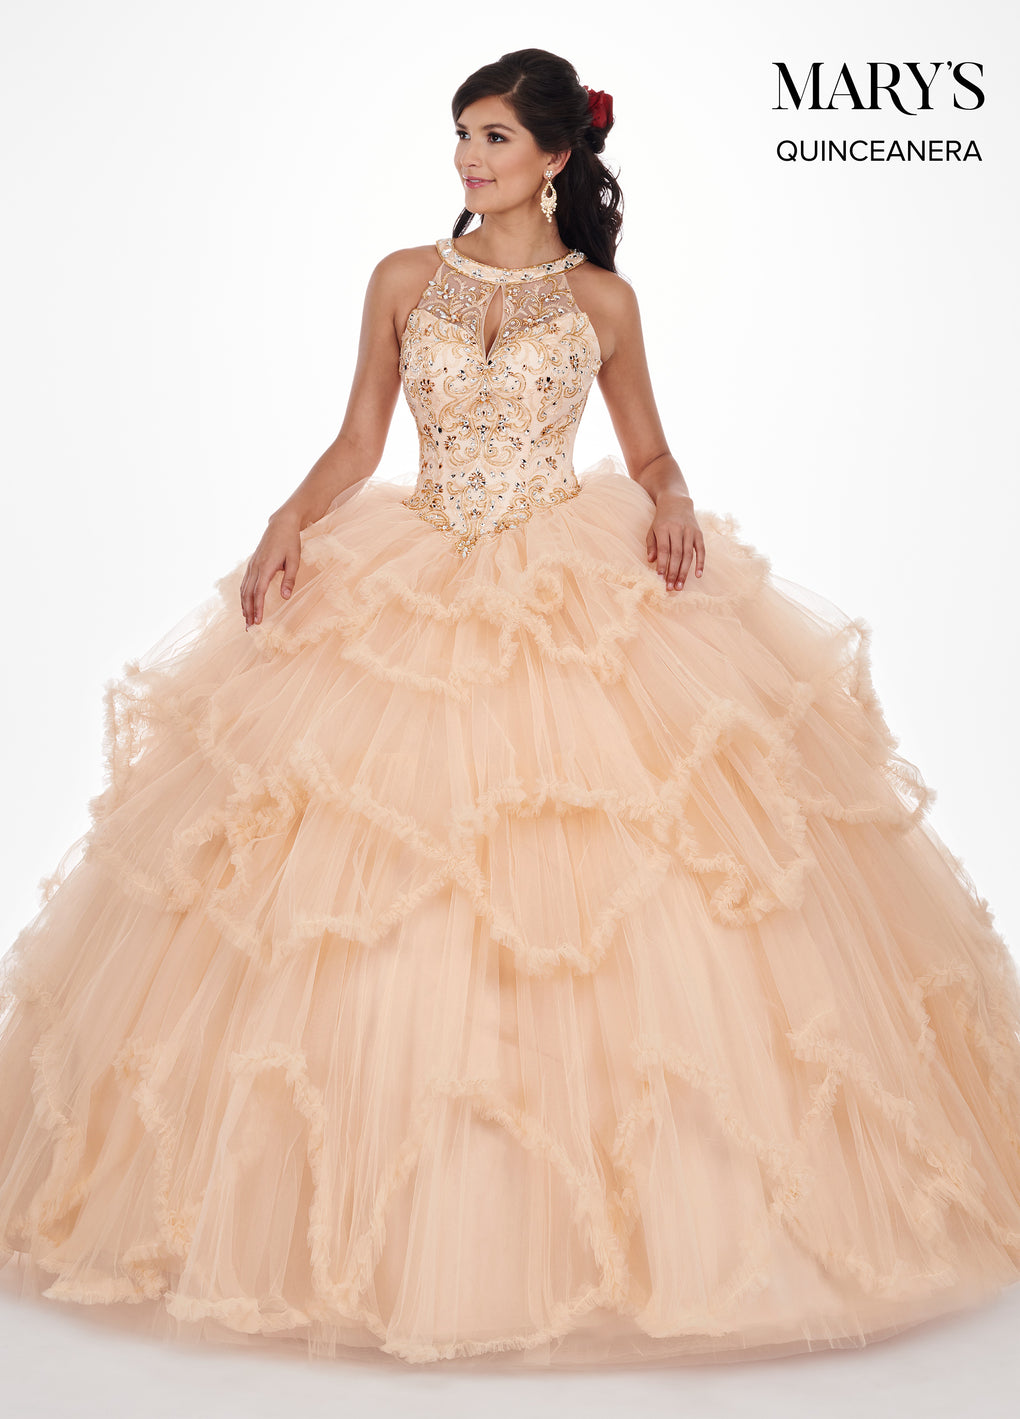 Marys Quinceanera Dresses in Red or Dark Champagne Color